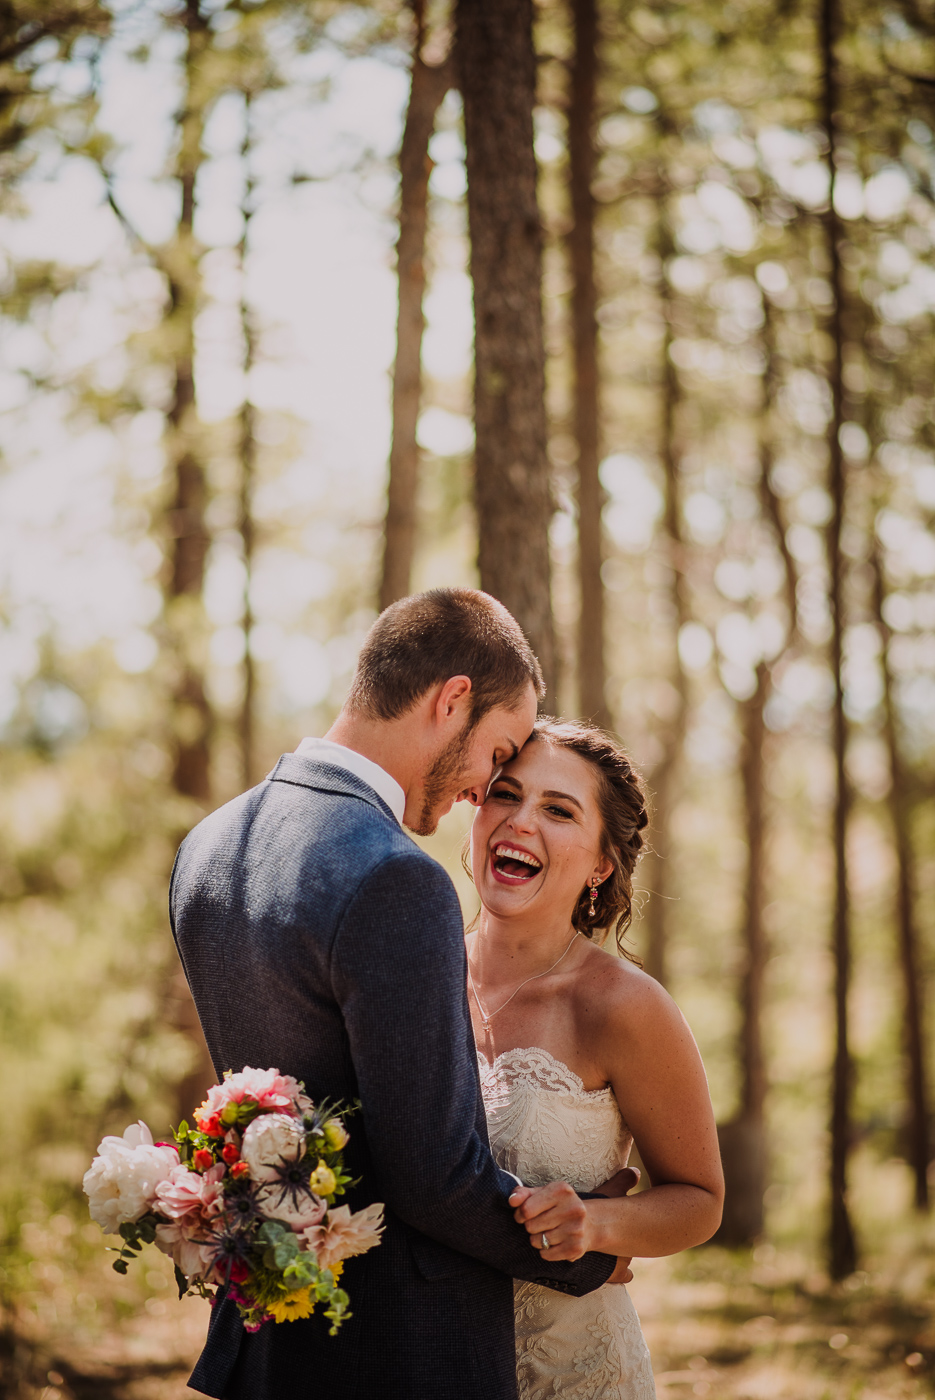 PHOCO2018TopPhotos_portrait_wedding-9.jpg